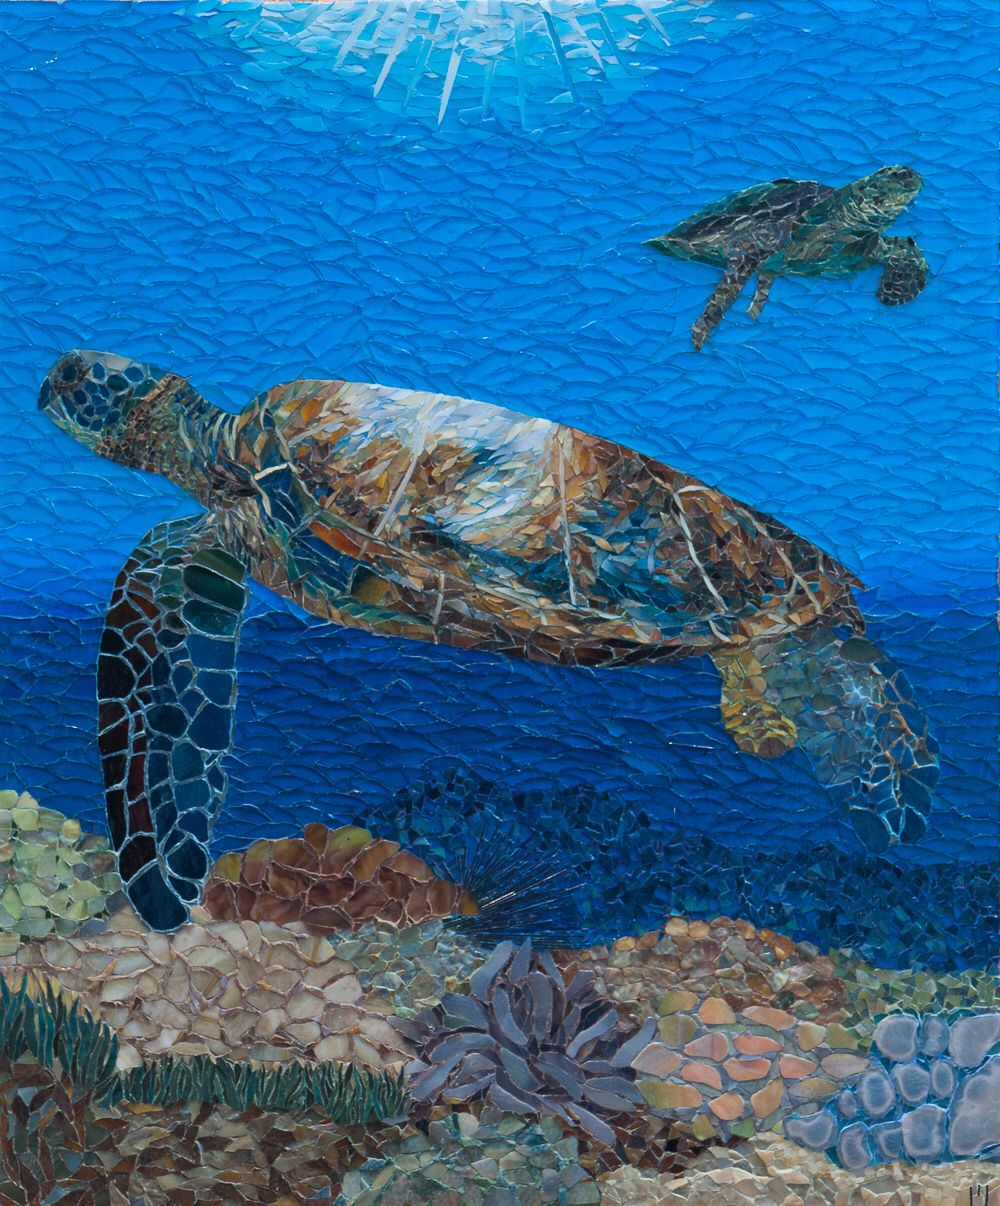 Big Island Turtle www.marydrivermosaics.com